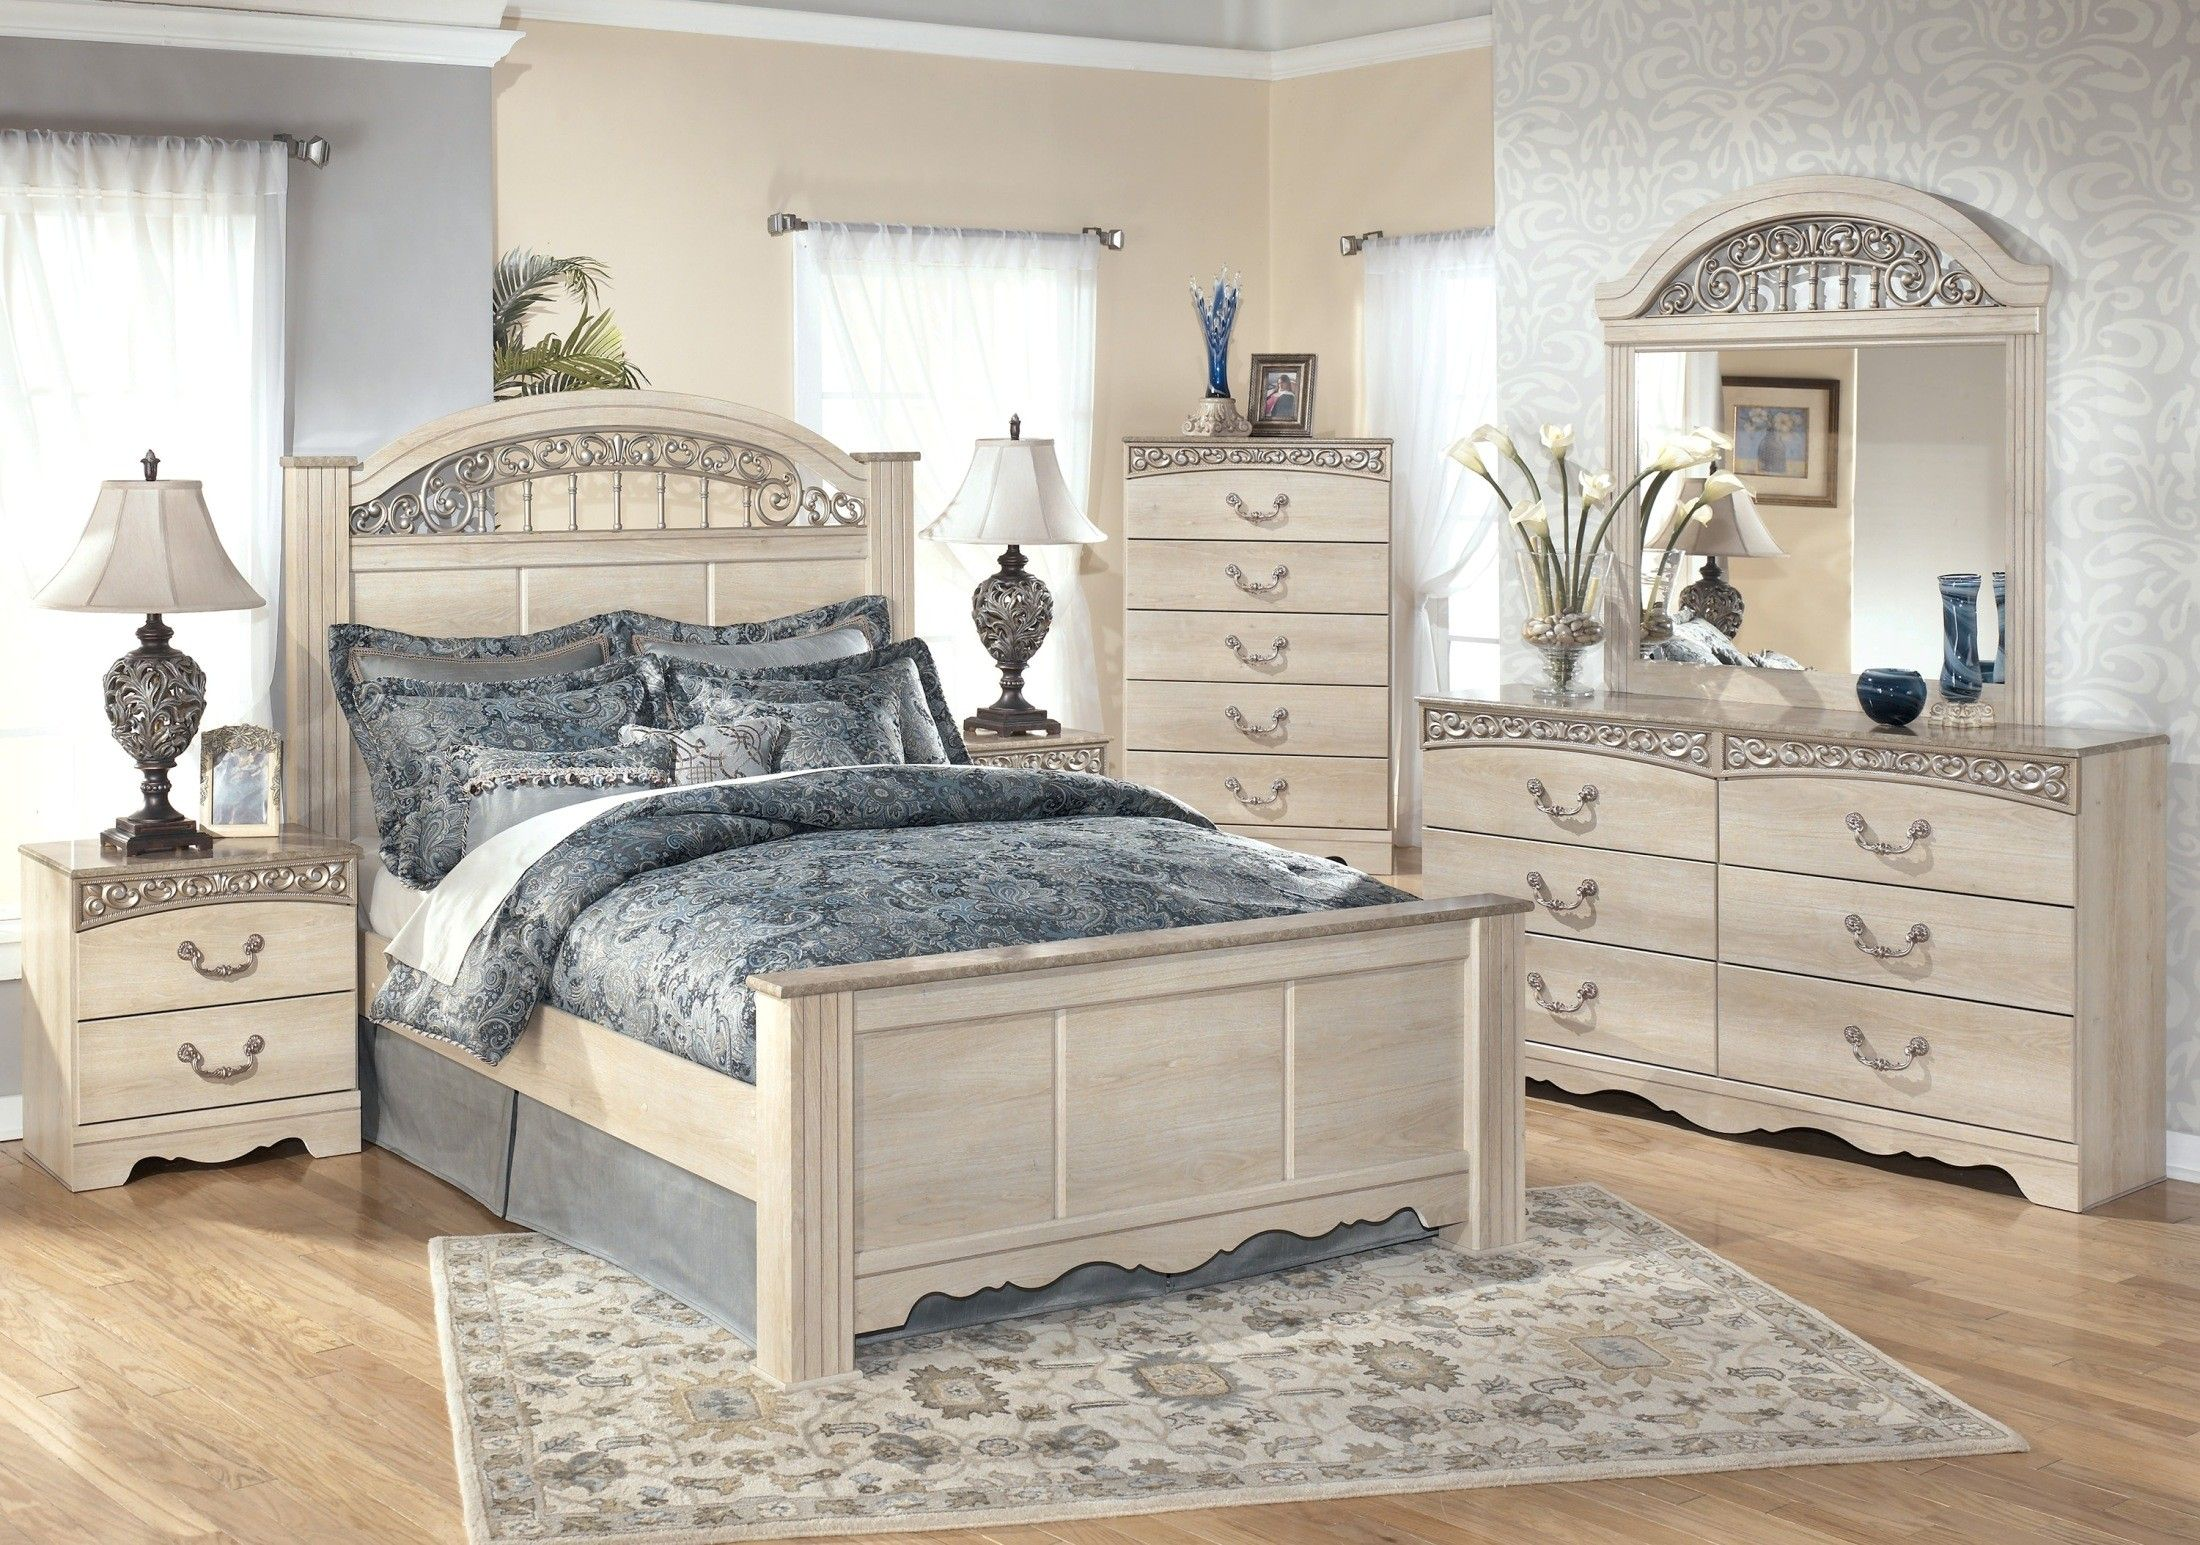 Catalina Bedroom Set $558 with free delivery